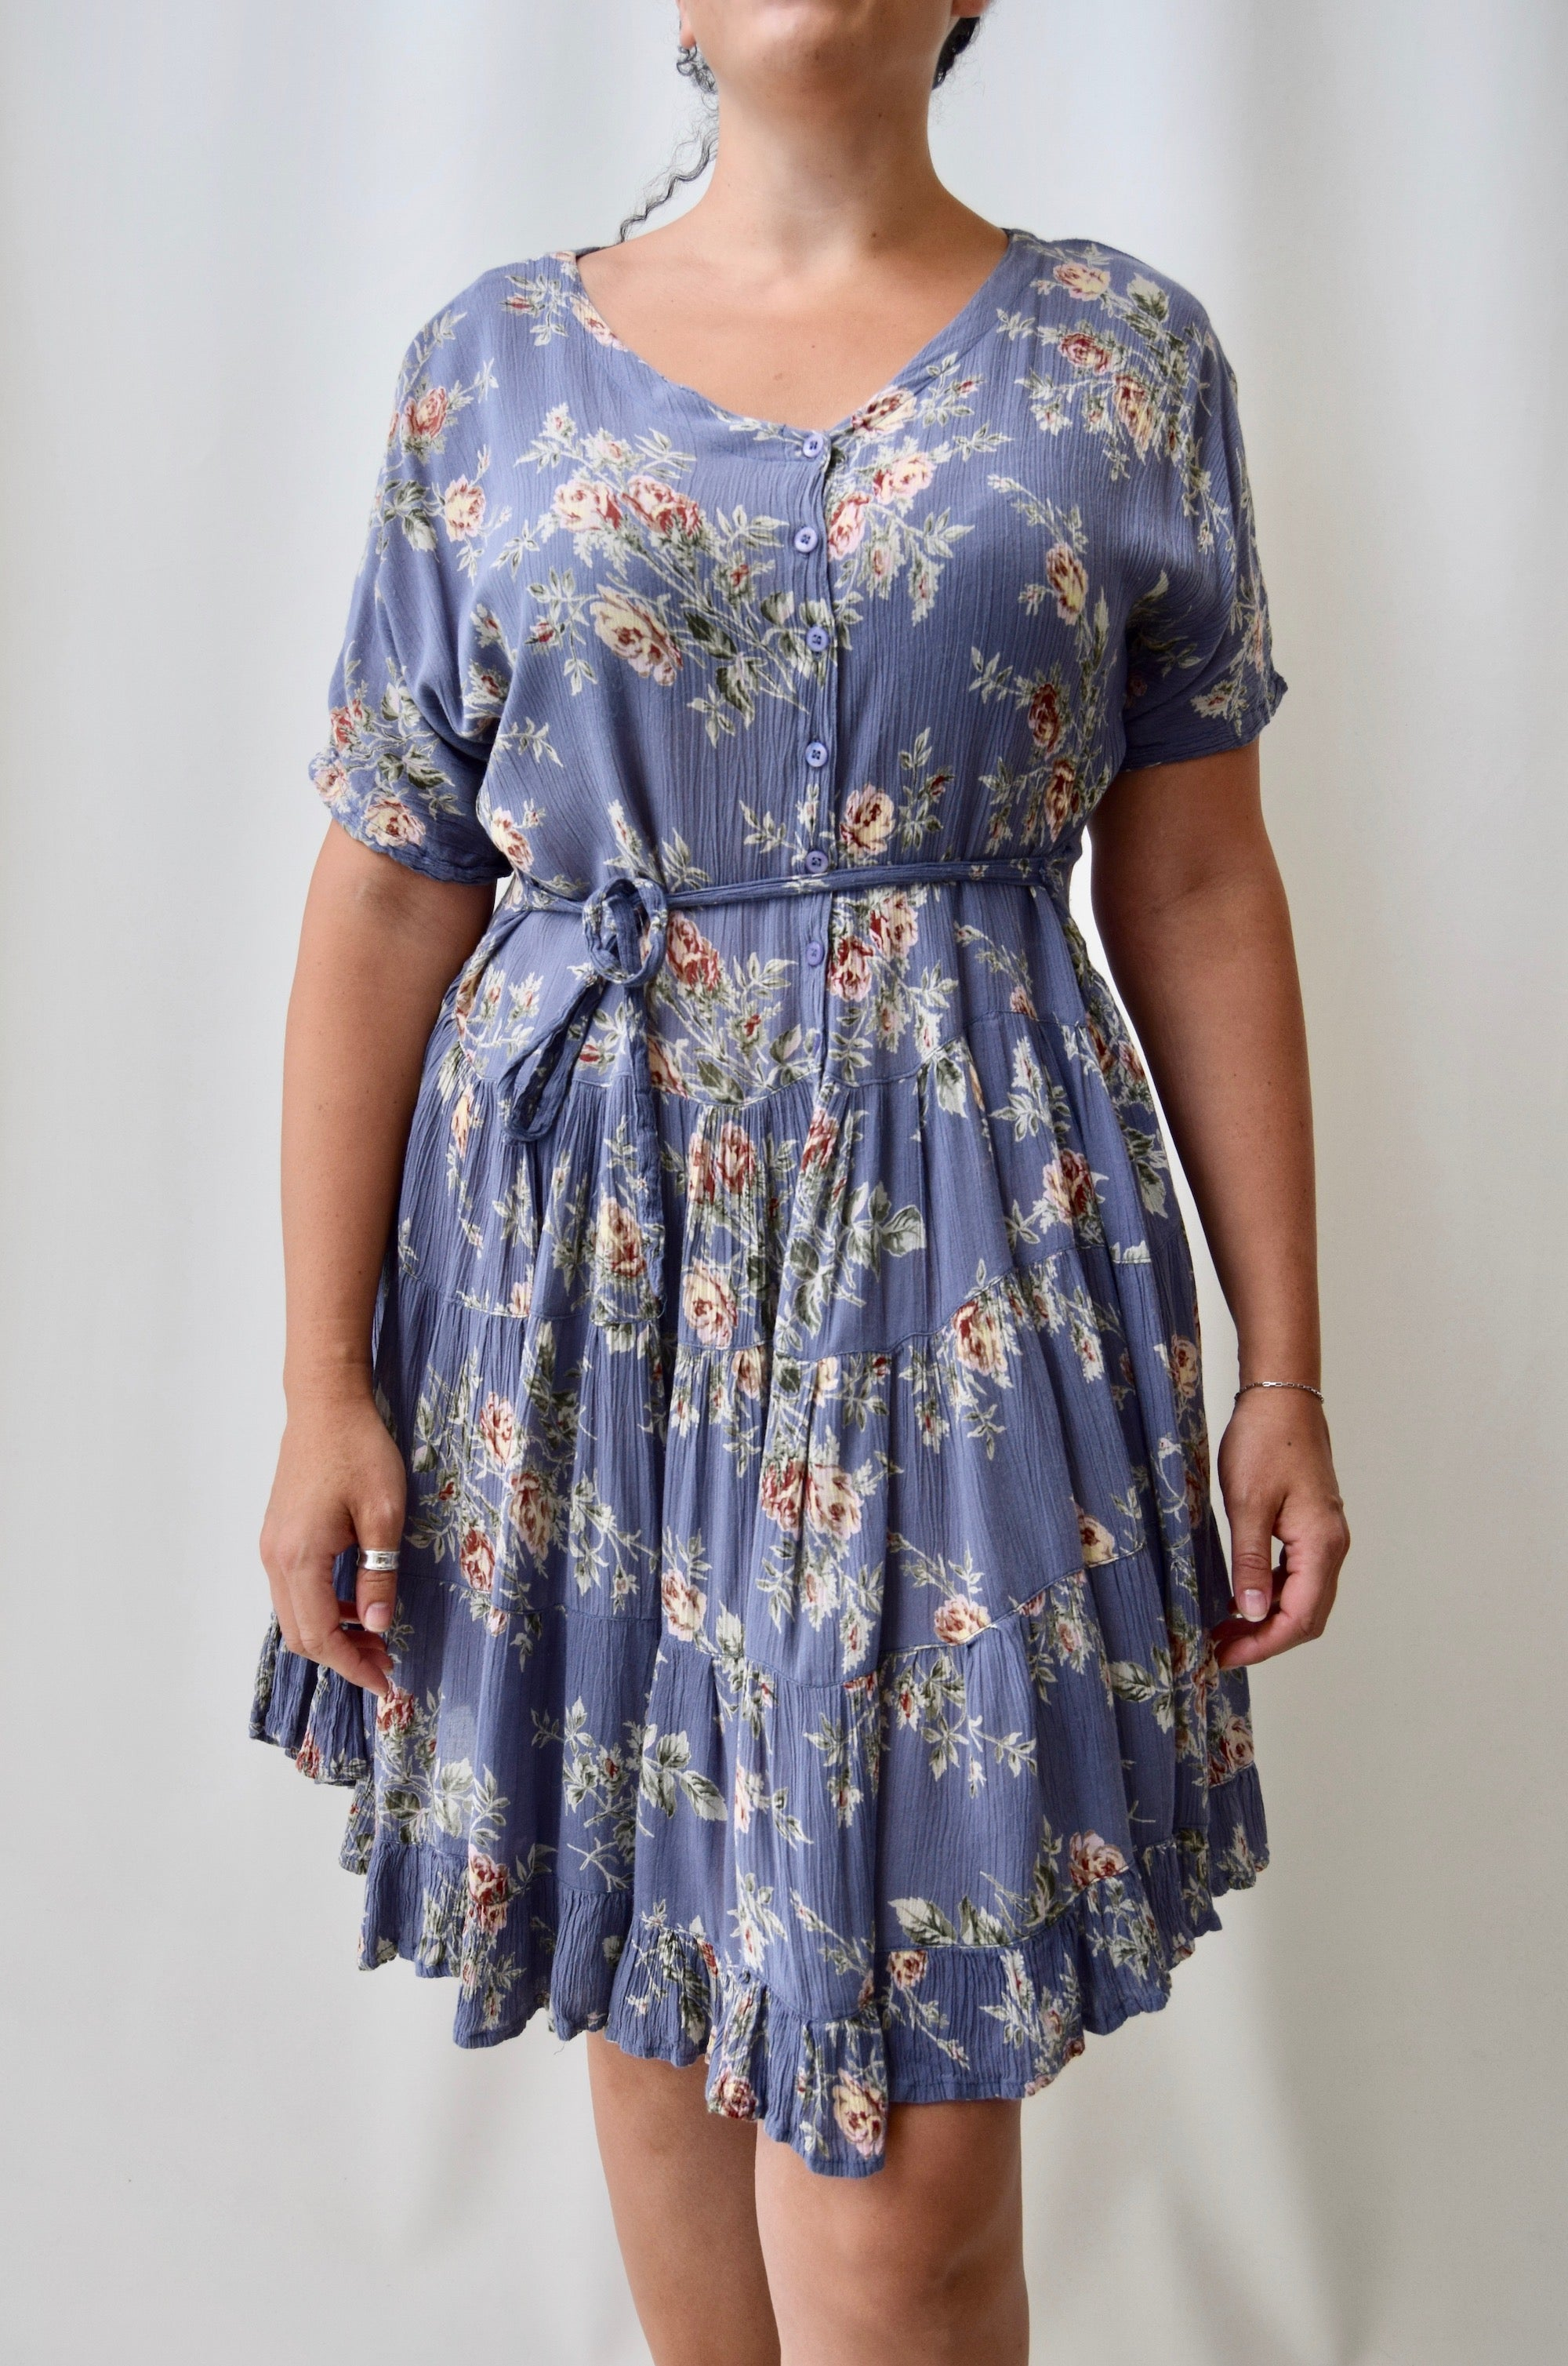 90's Periwinkle Floral Dress